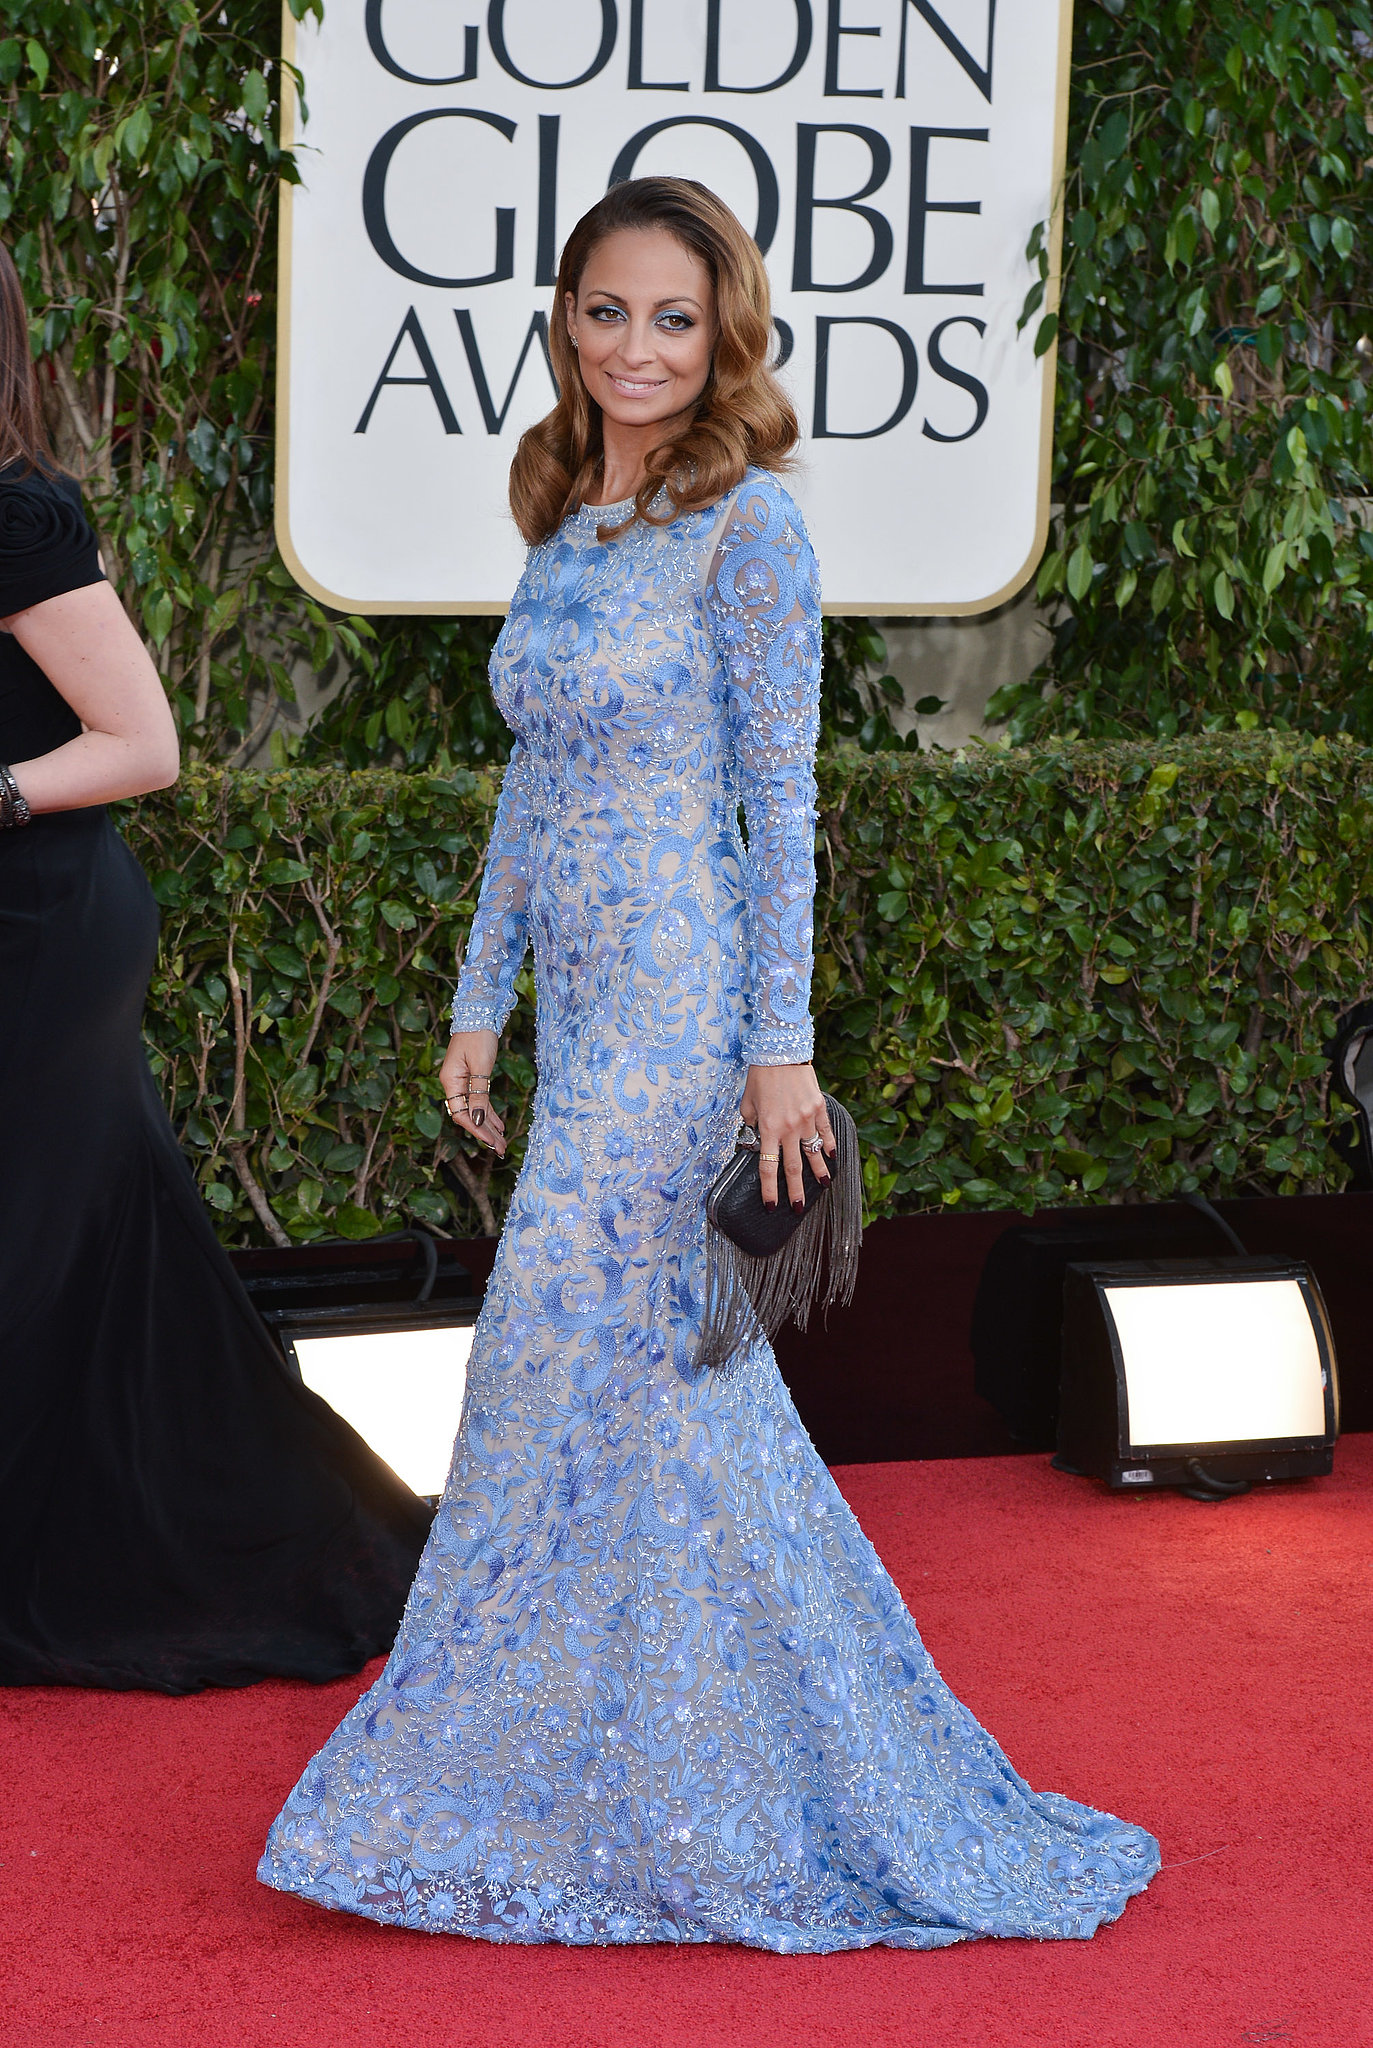 Nicole was a vision in blue when she walked the red carpet at the Golden Globes in LA in January 2013.